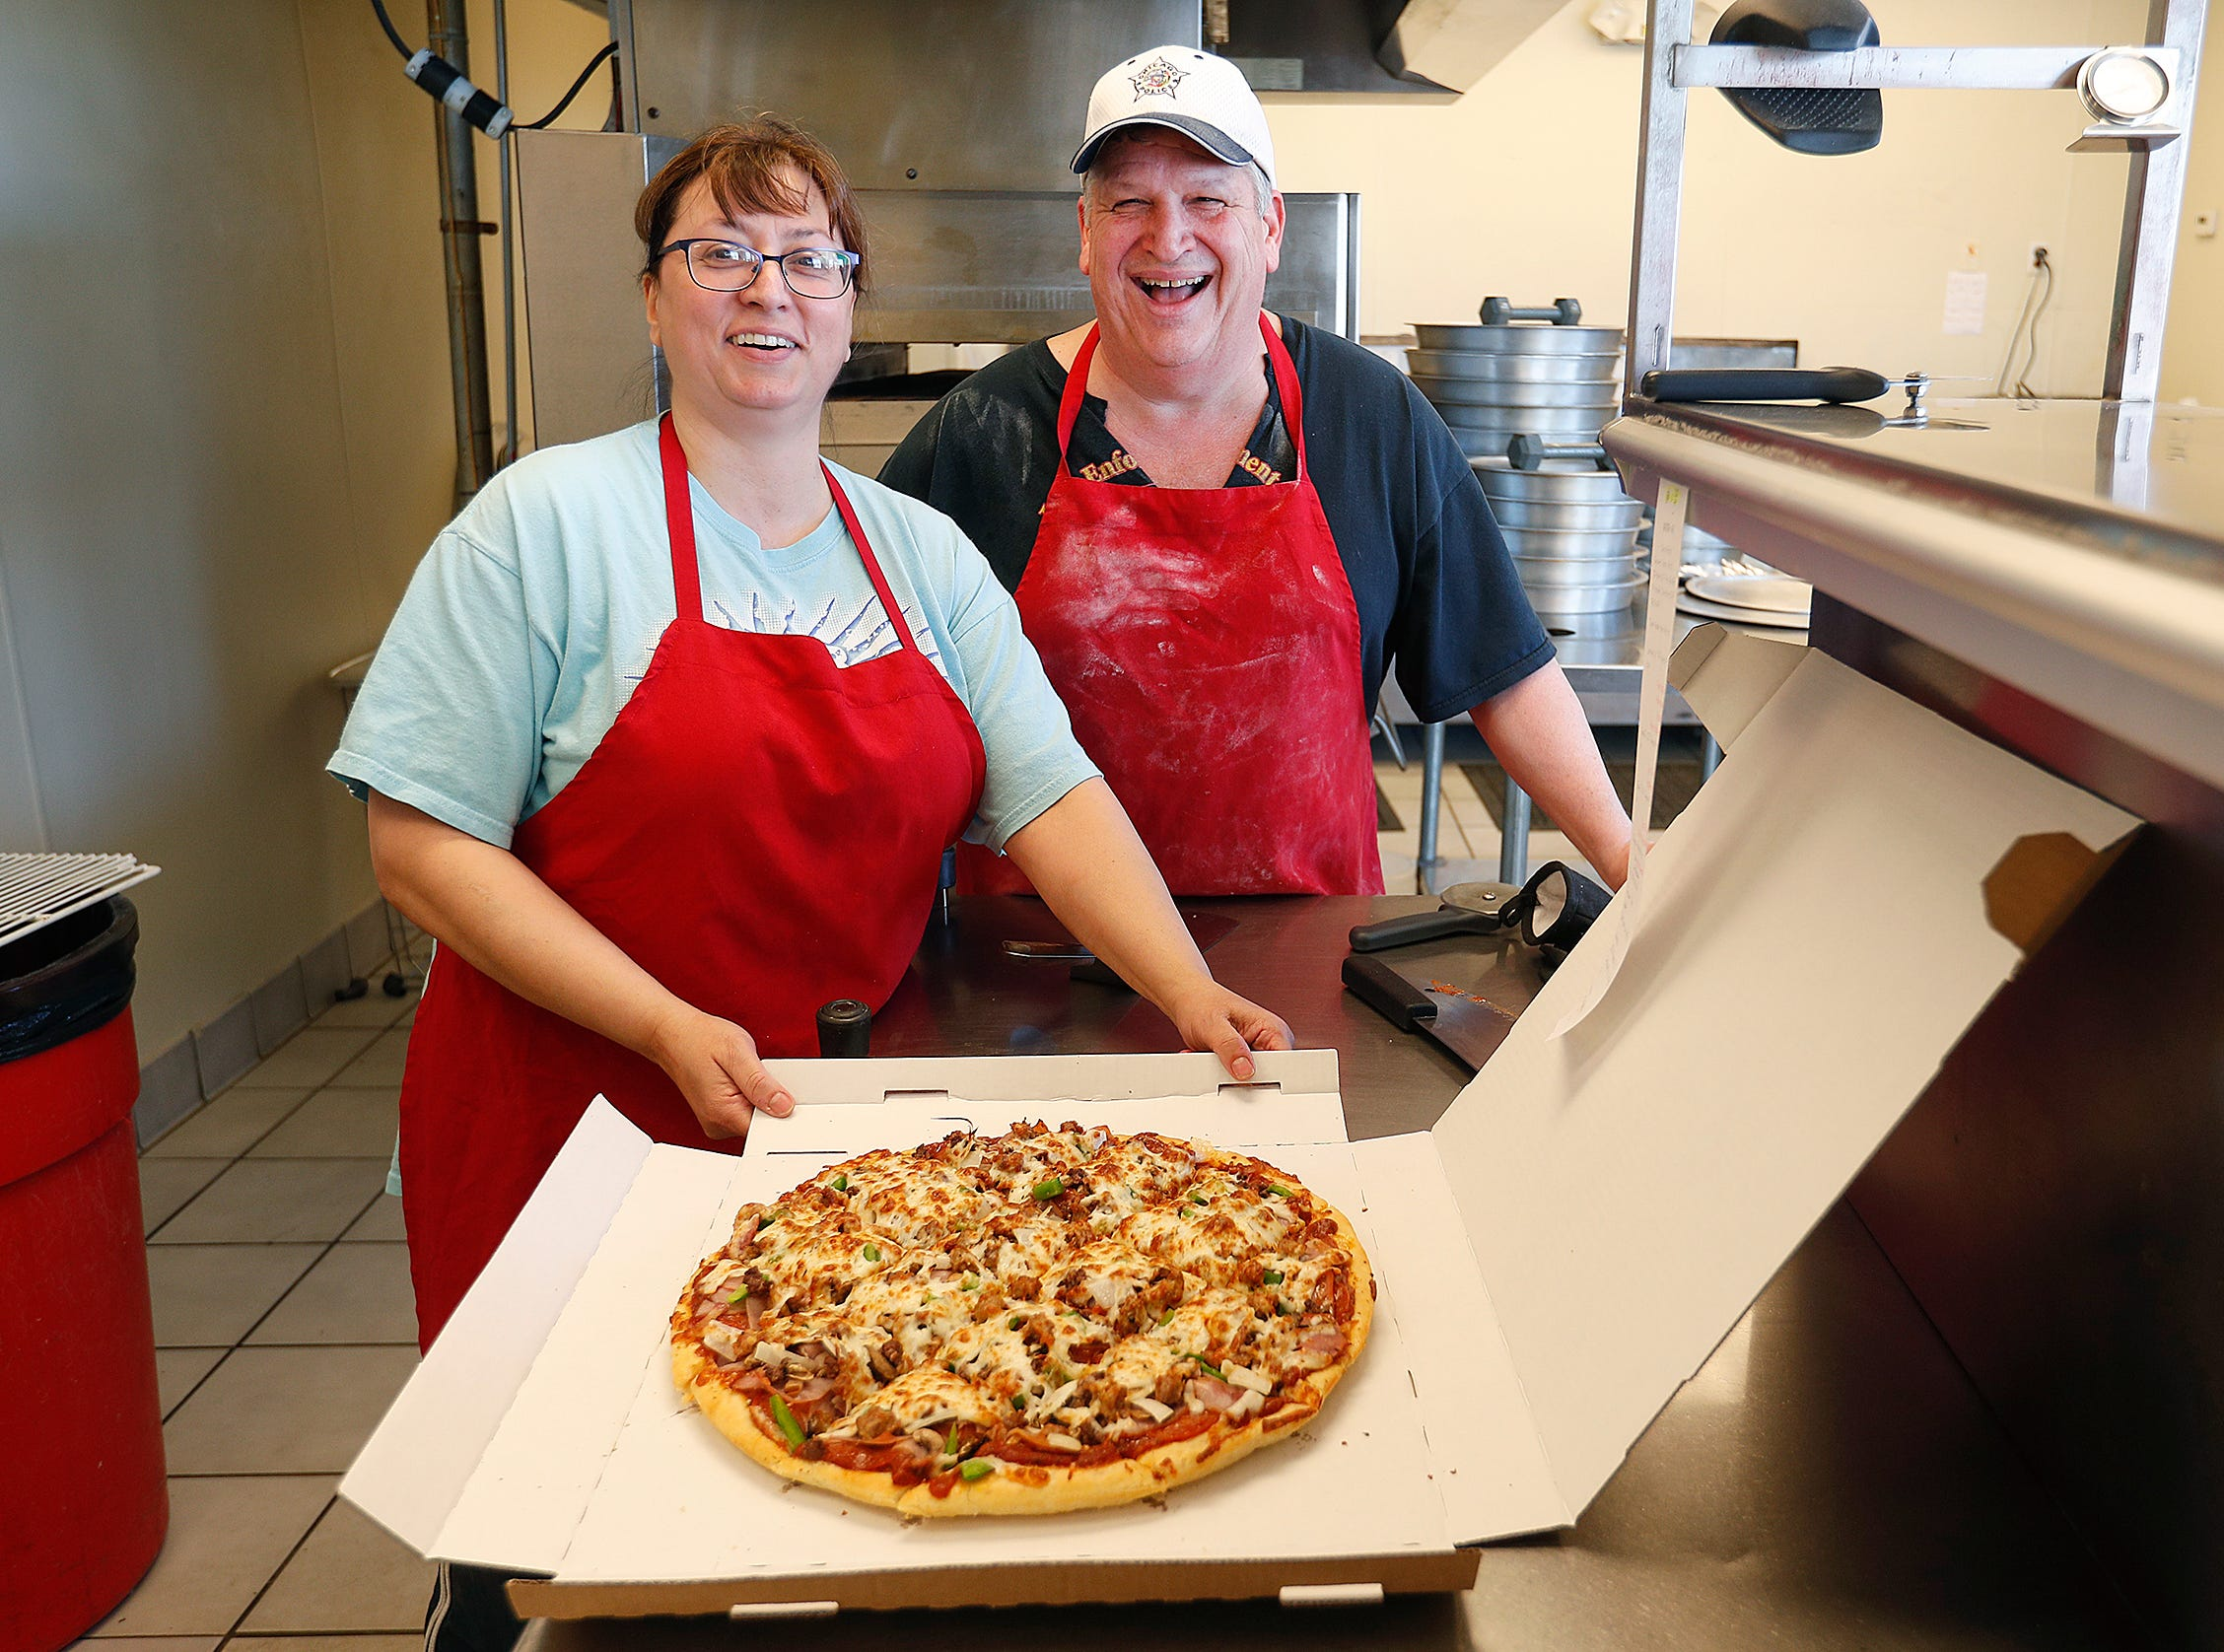 "Tom and Angie Wilhelmi moved from Chicago to Greenwood and opened AgapŽ Pizza. The ""Pizza with a Purpose"" combines their two passions of pizza and helping the homeless. 100% of the tips go to the local ministry, Tear Down the Walls. The nonprofit also receives 5% of their net sales."